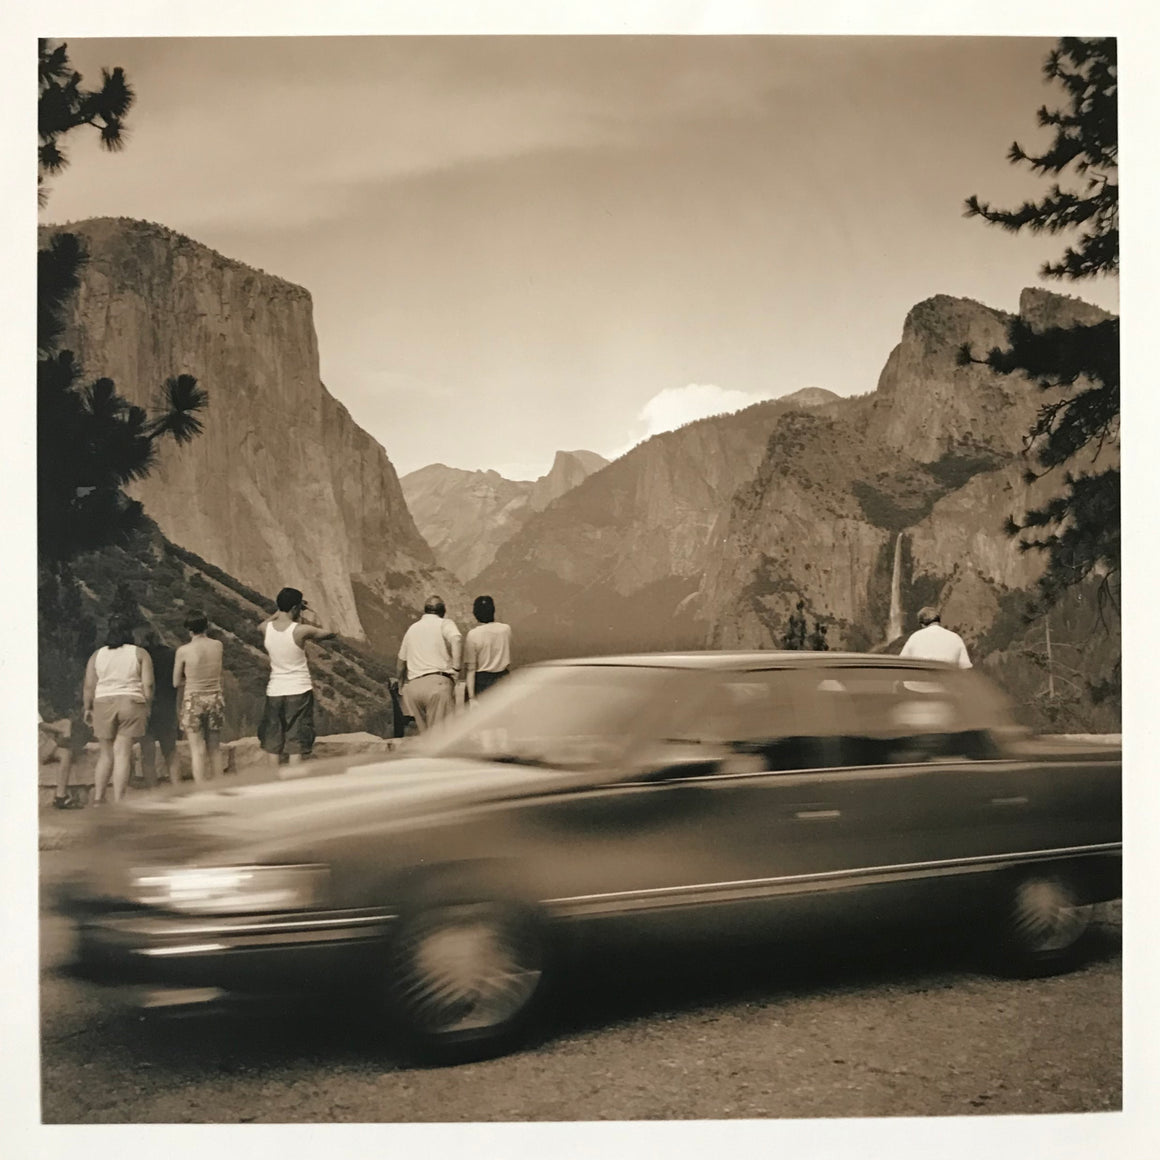 CARS OF YOSEMITE (2)